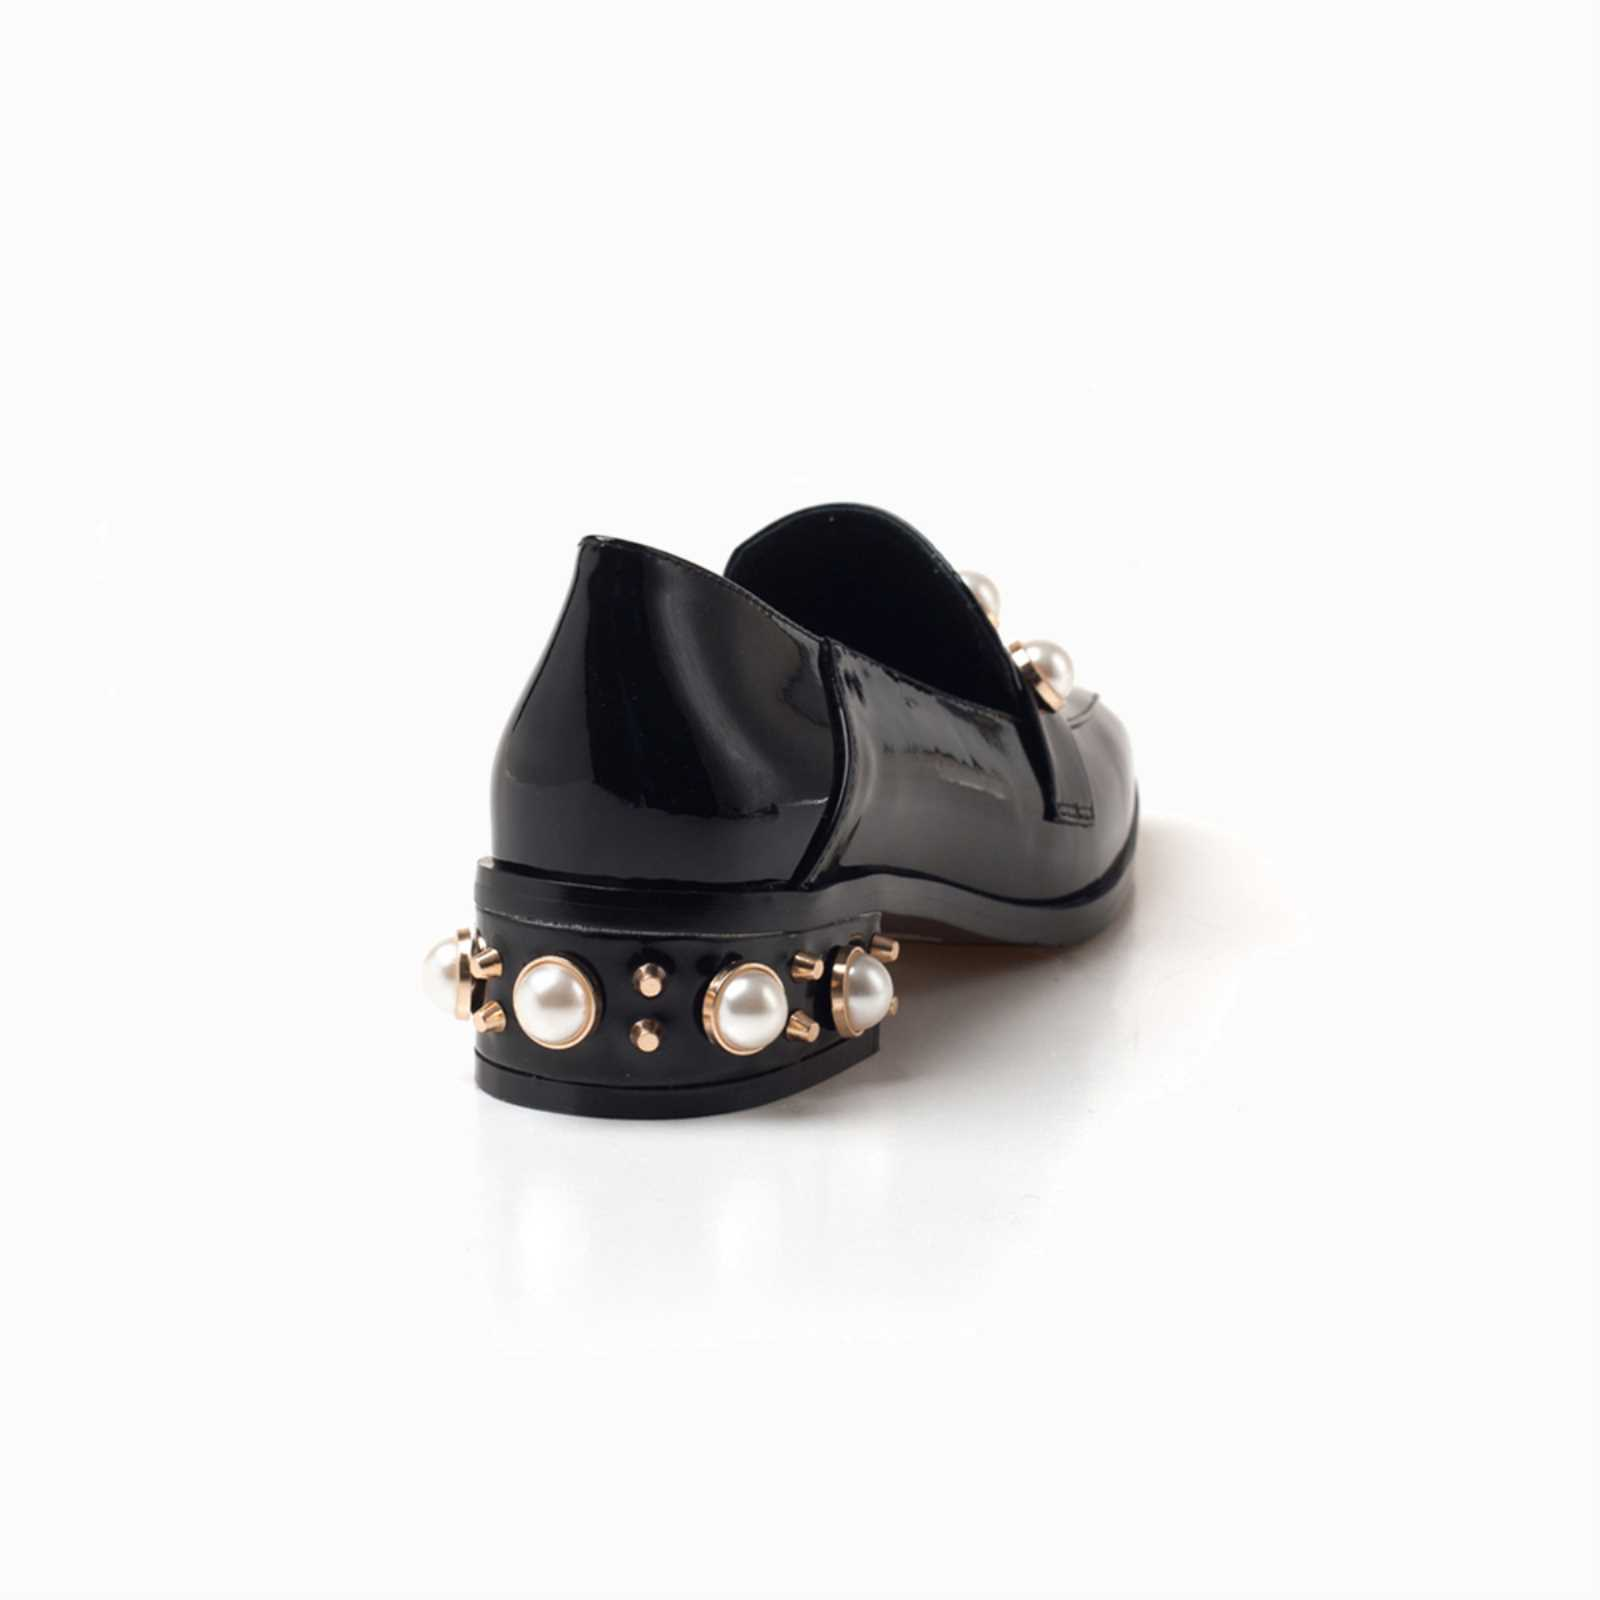 cf228f7c544 Details about UGG OZWEAR LADIES NITA PEARL SLIPPER FLATS BLACK GENUINE  LEATHER SHOES OB315